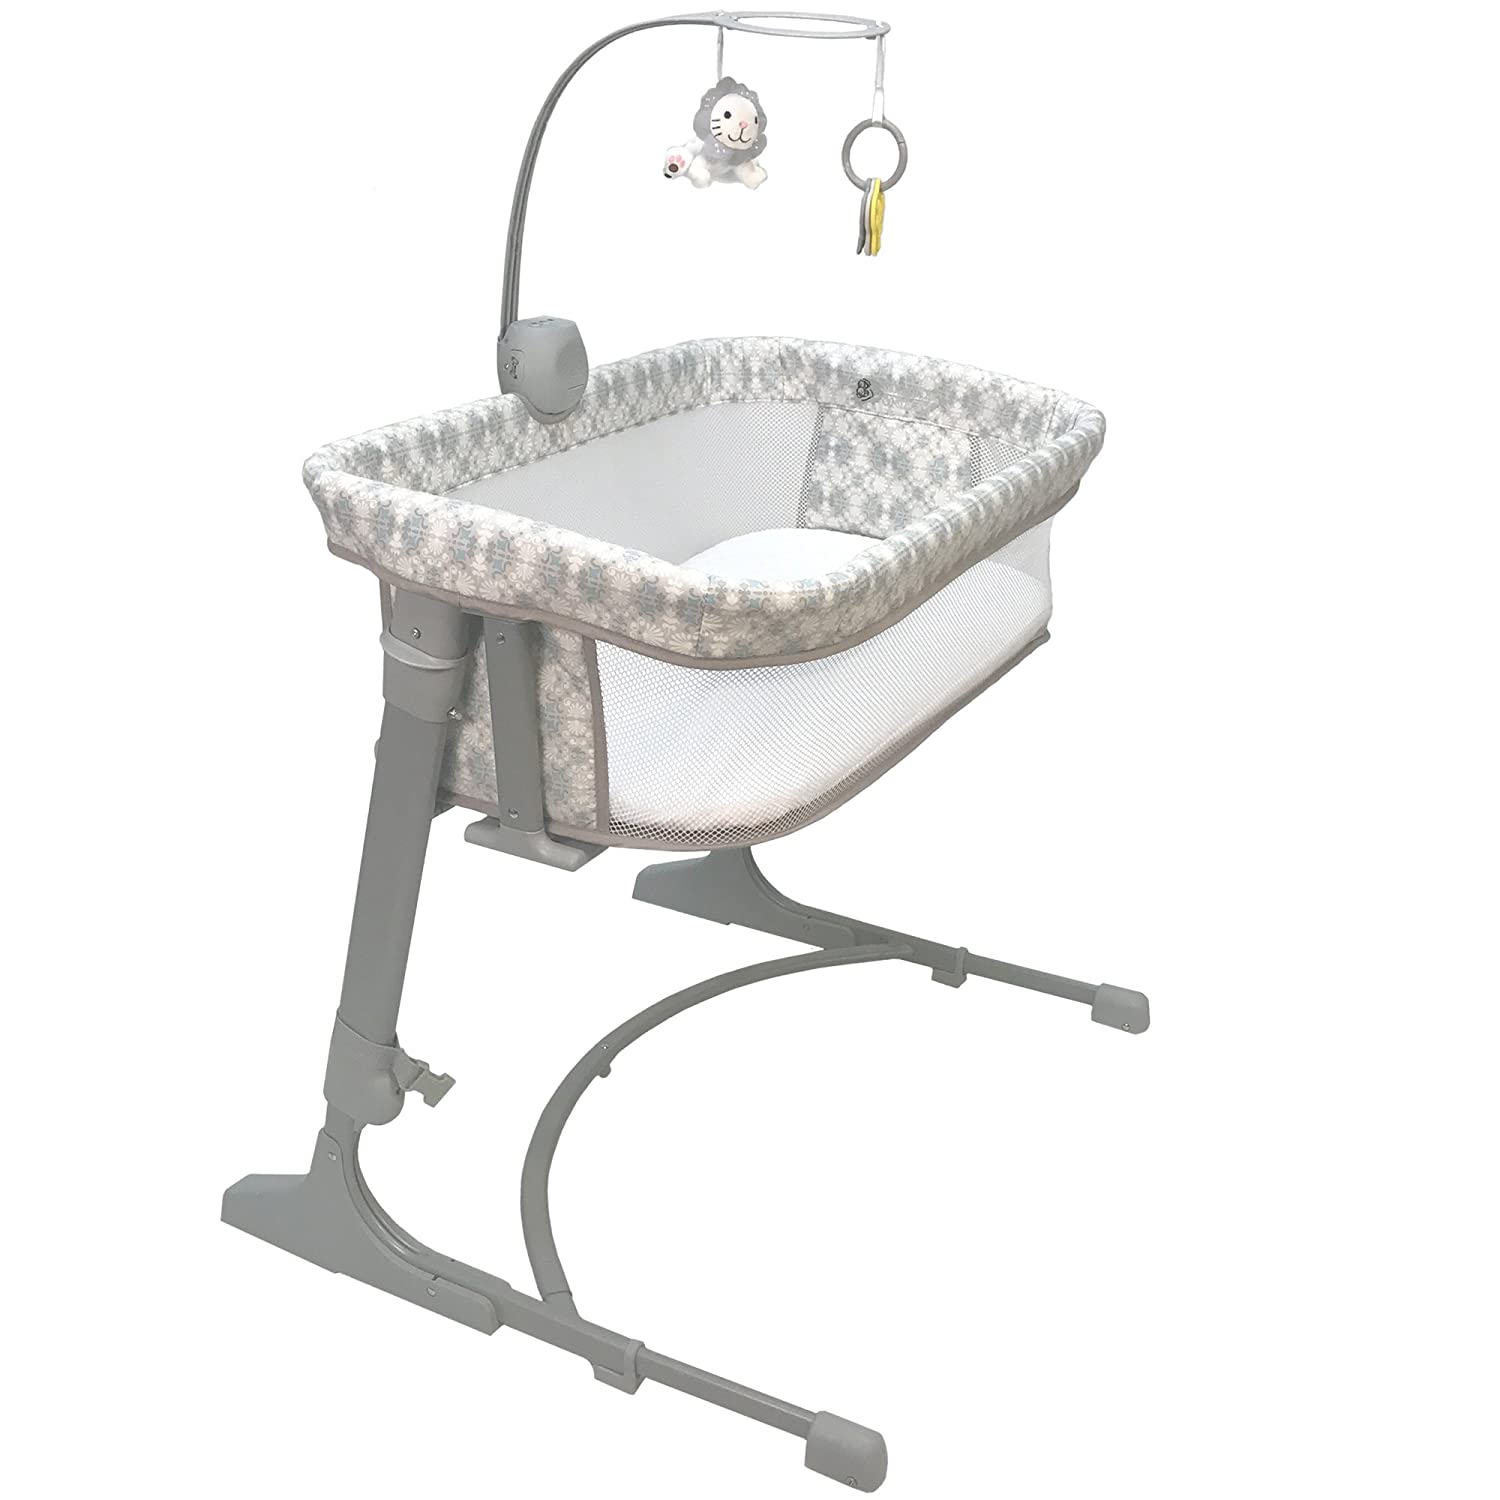 CoSleeper 7100-BL Versatile Bassinet - Bliss White/blue/grey One Size Arm' s Reach Concepts Inc.